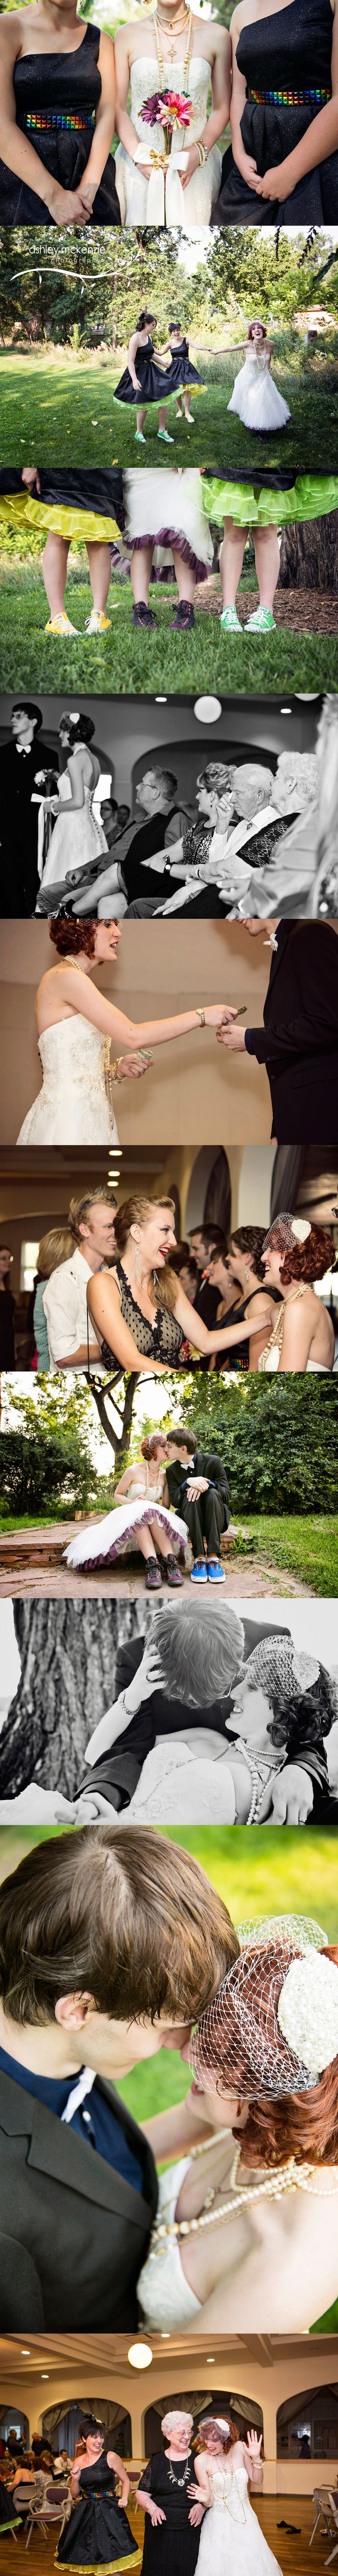 Wedding Photography by Ashley McKenzie Photography in Fort Collins,  Colorado